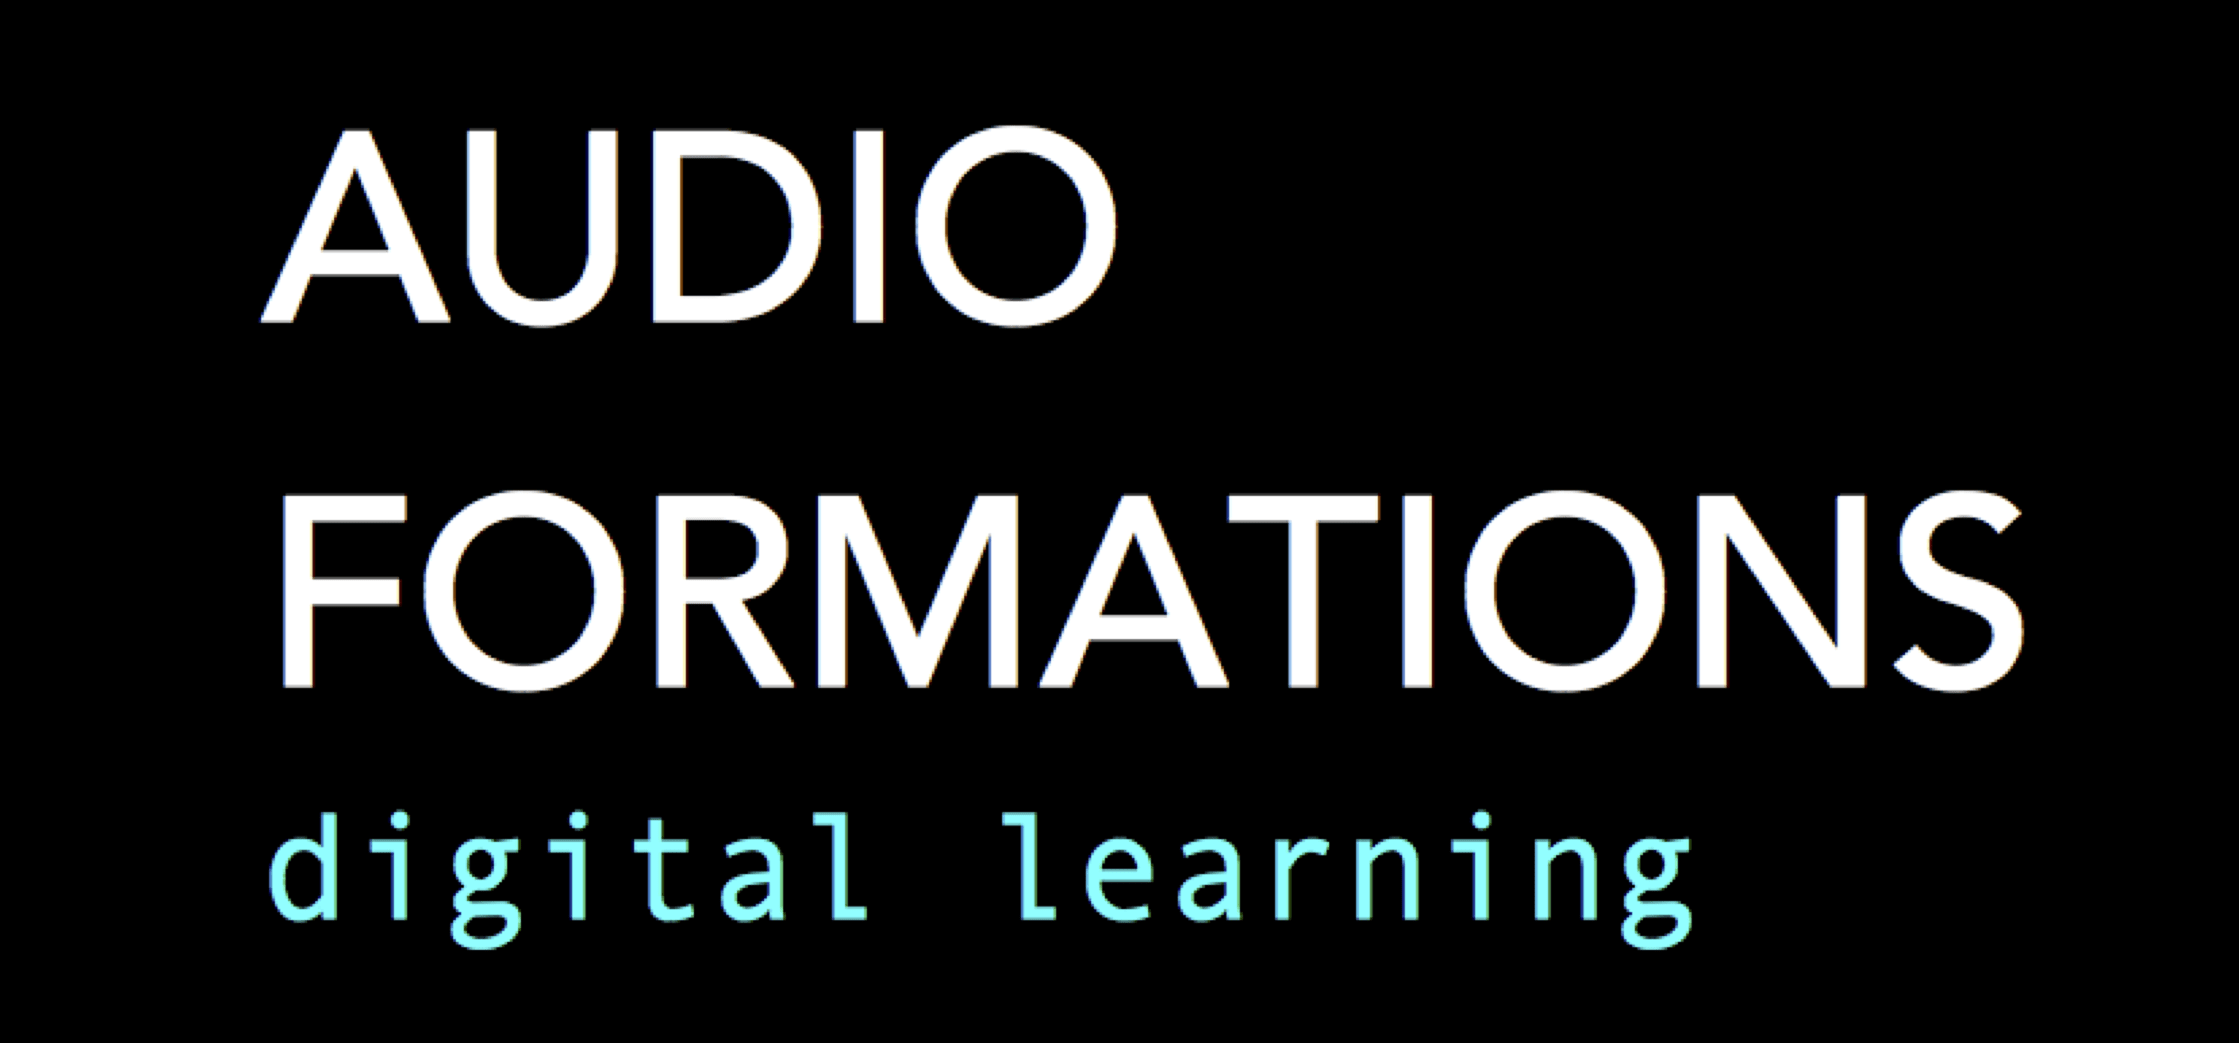 audio formations - digital learning